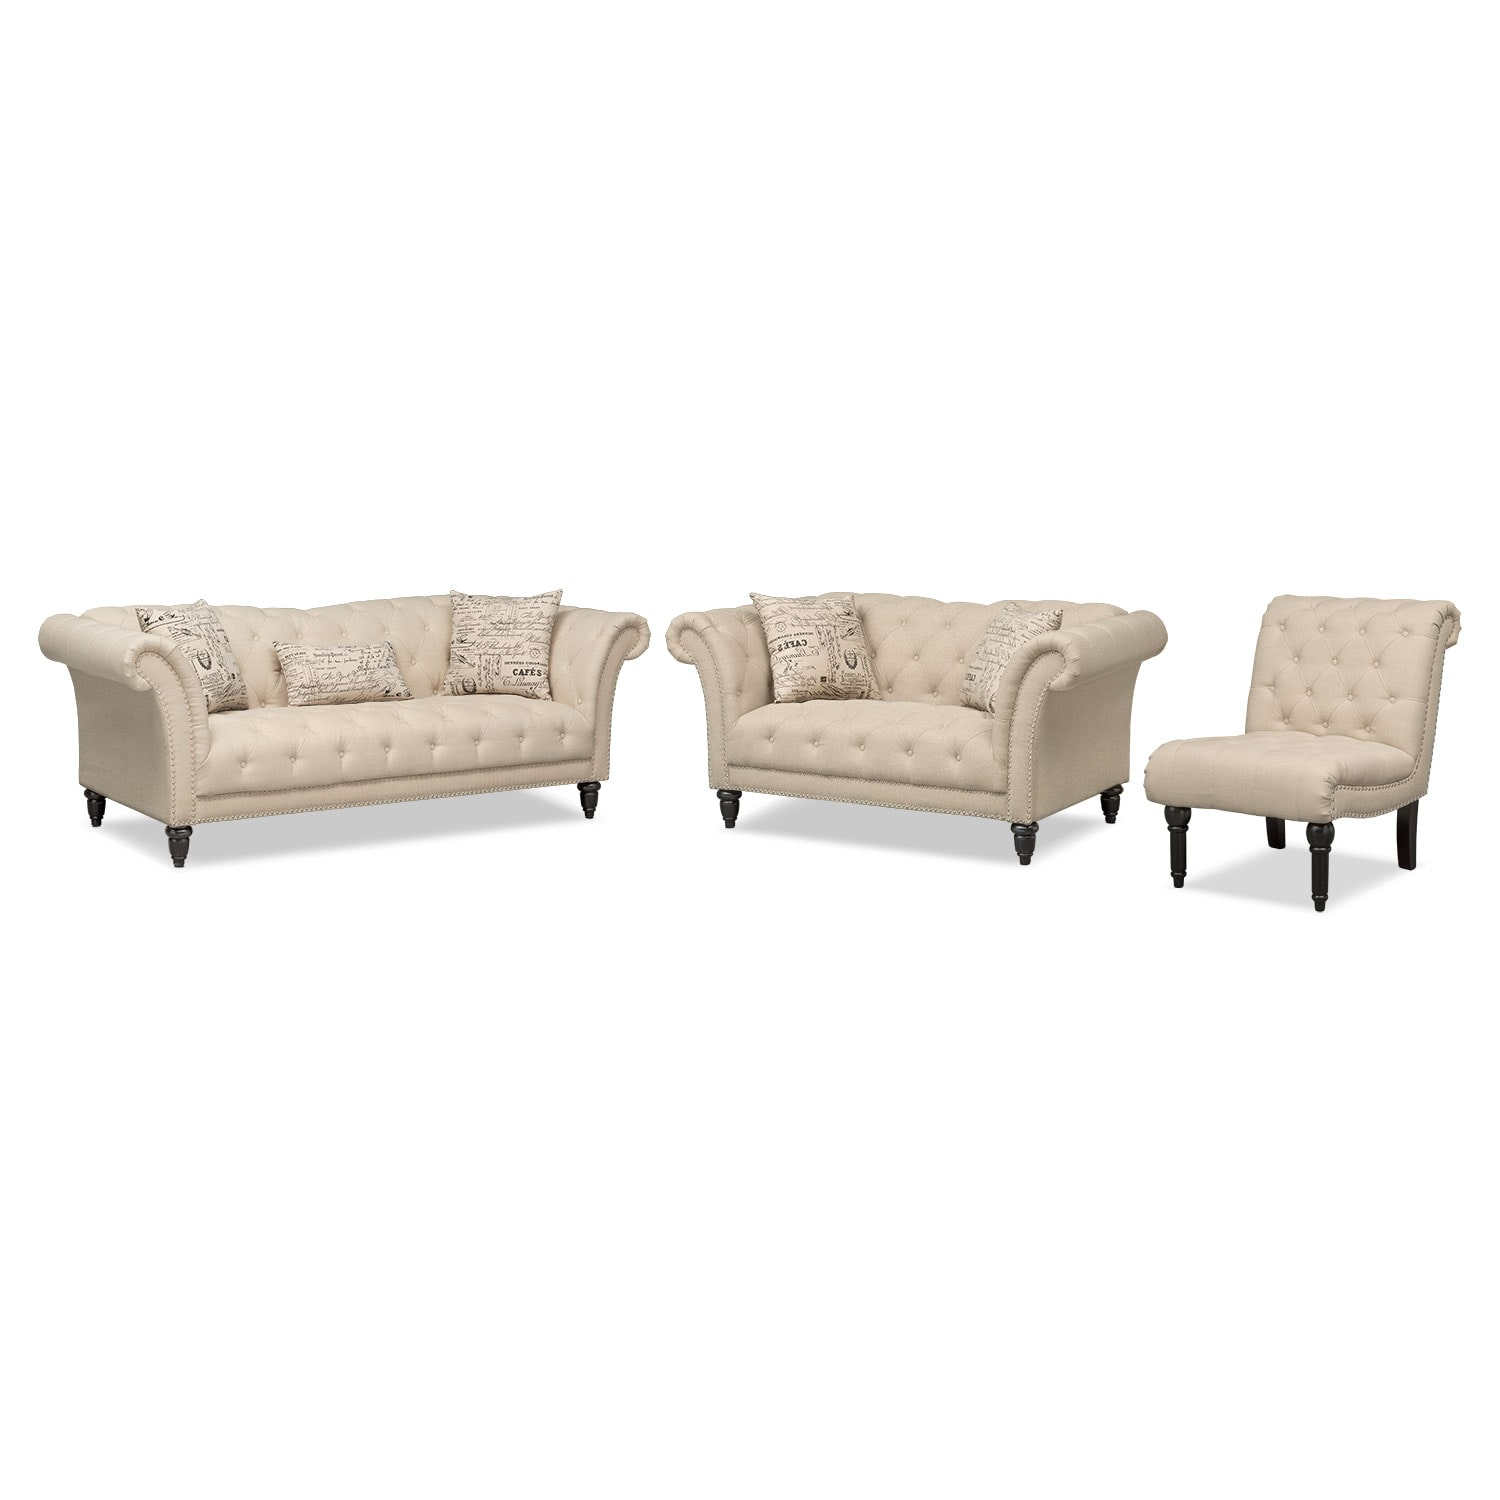 Marisol Sofa, Loveseat and Armless Chair Set - Beige